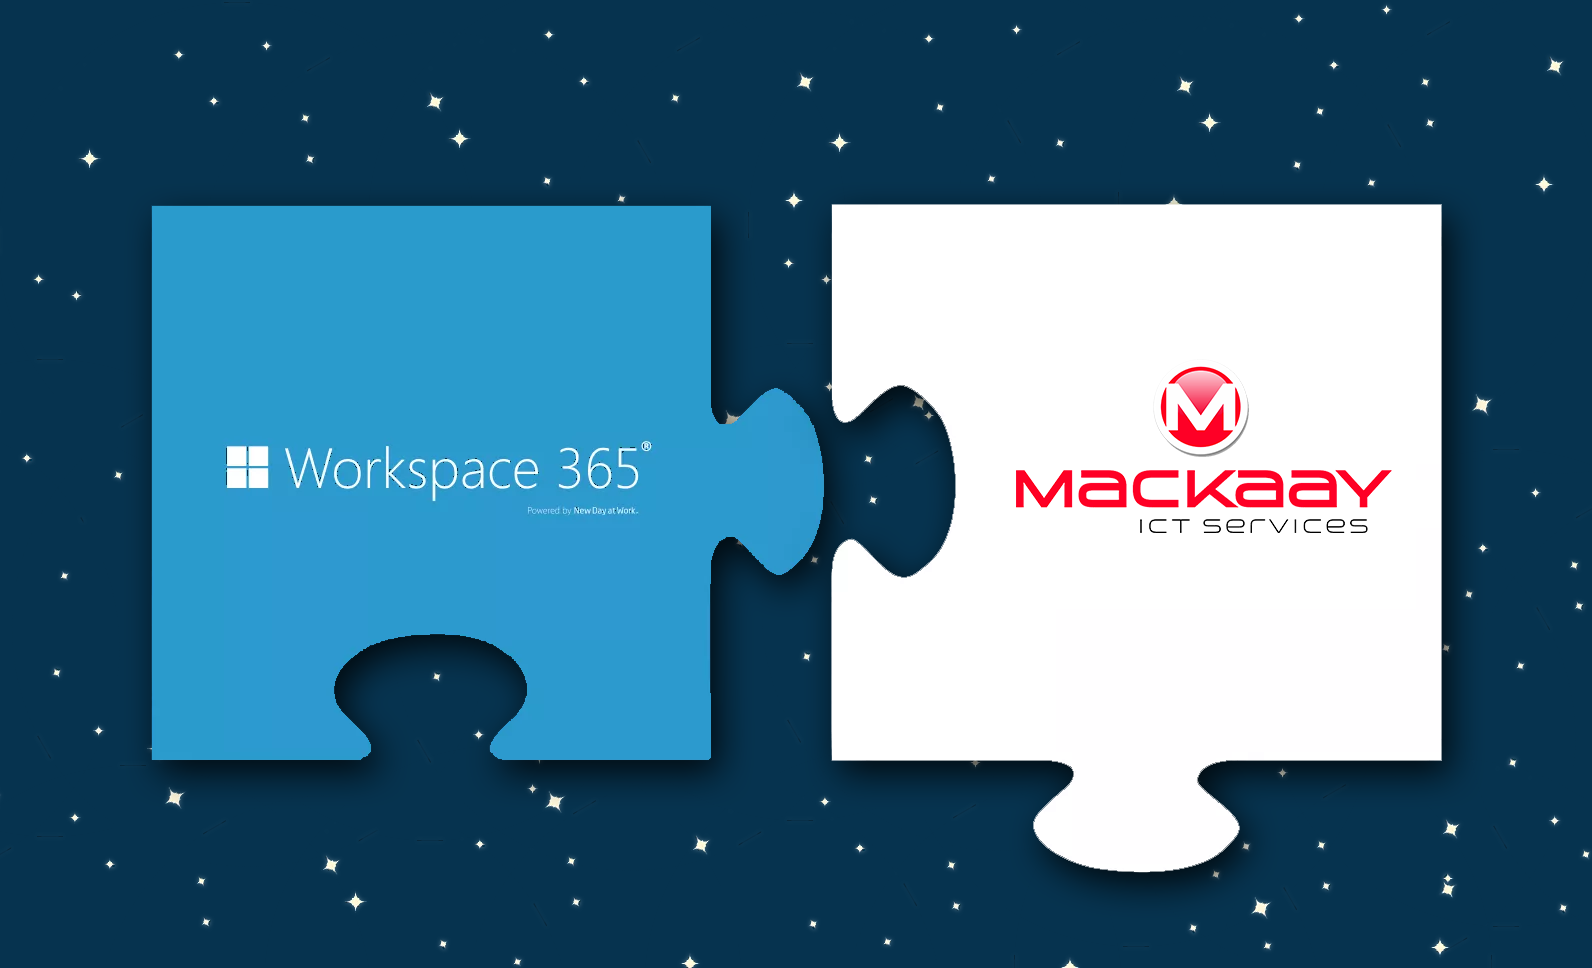 Mackaay ICT Services Workspace 365